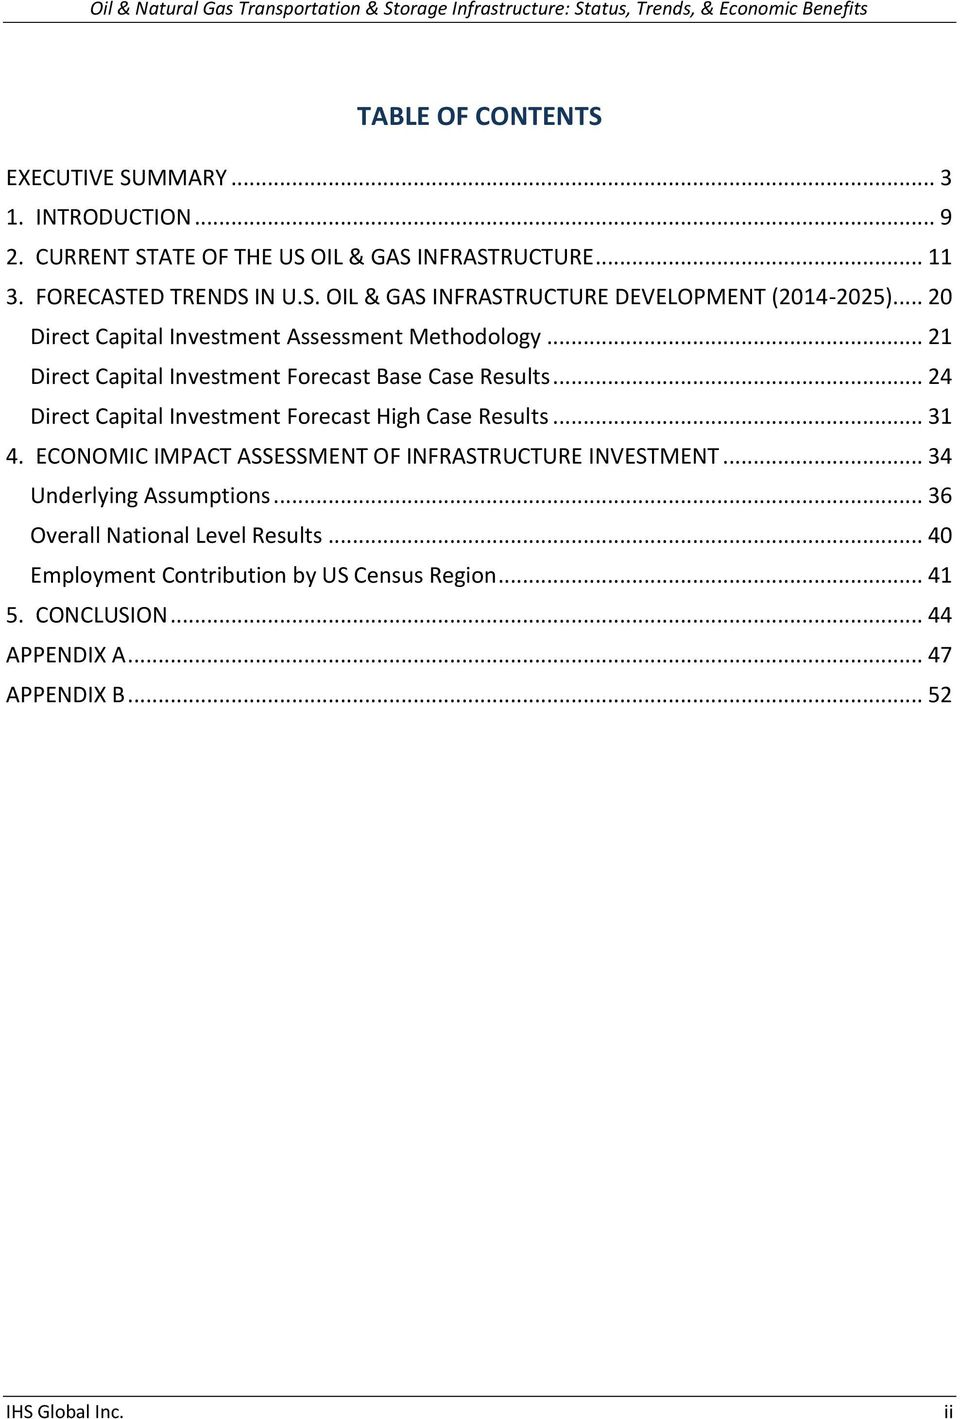 .. 24 Direct Capital Investment Forecast High Case Results... 31 4. ECONOMIC IMPACT ASSESSMENT OF INFRASTRUCTURE INVESTMENT... 34 Underlying Assumptions.